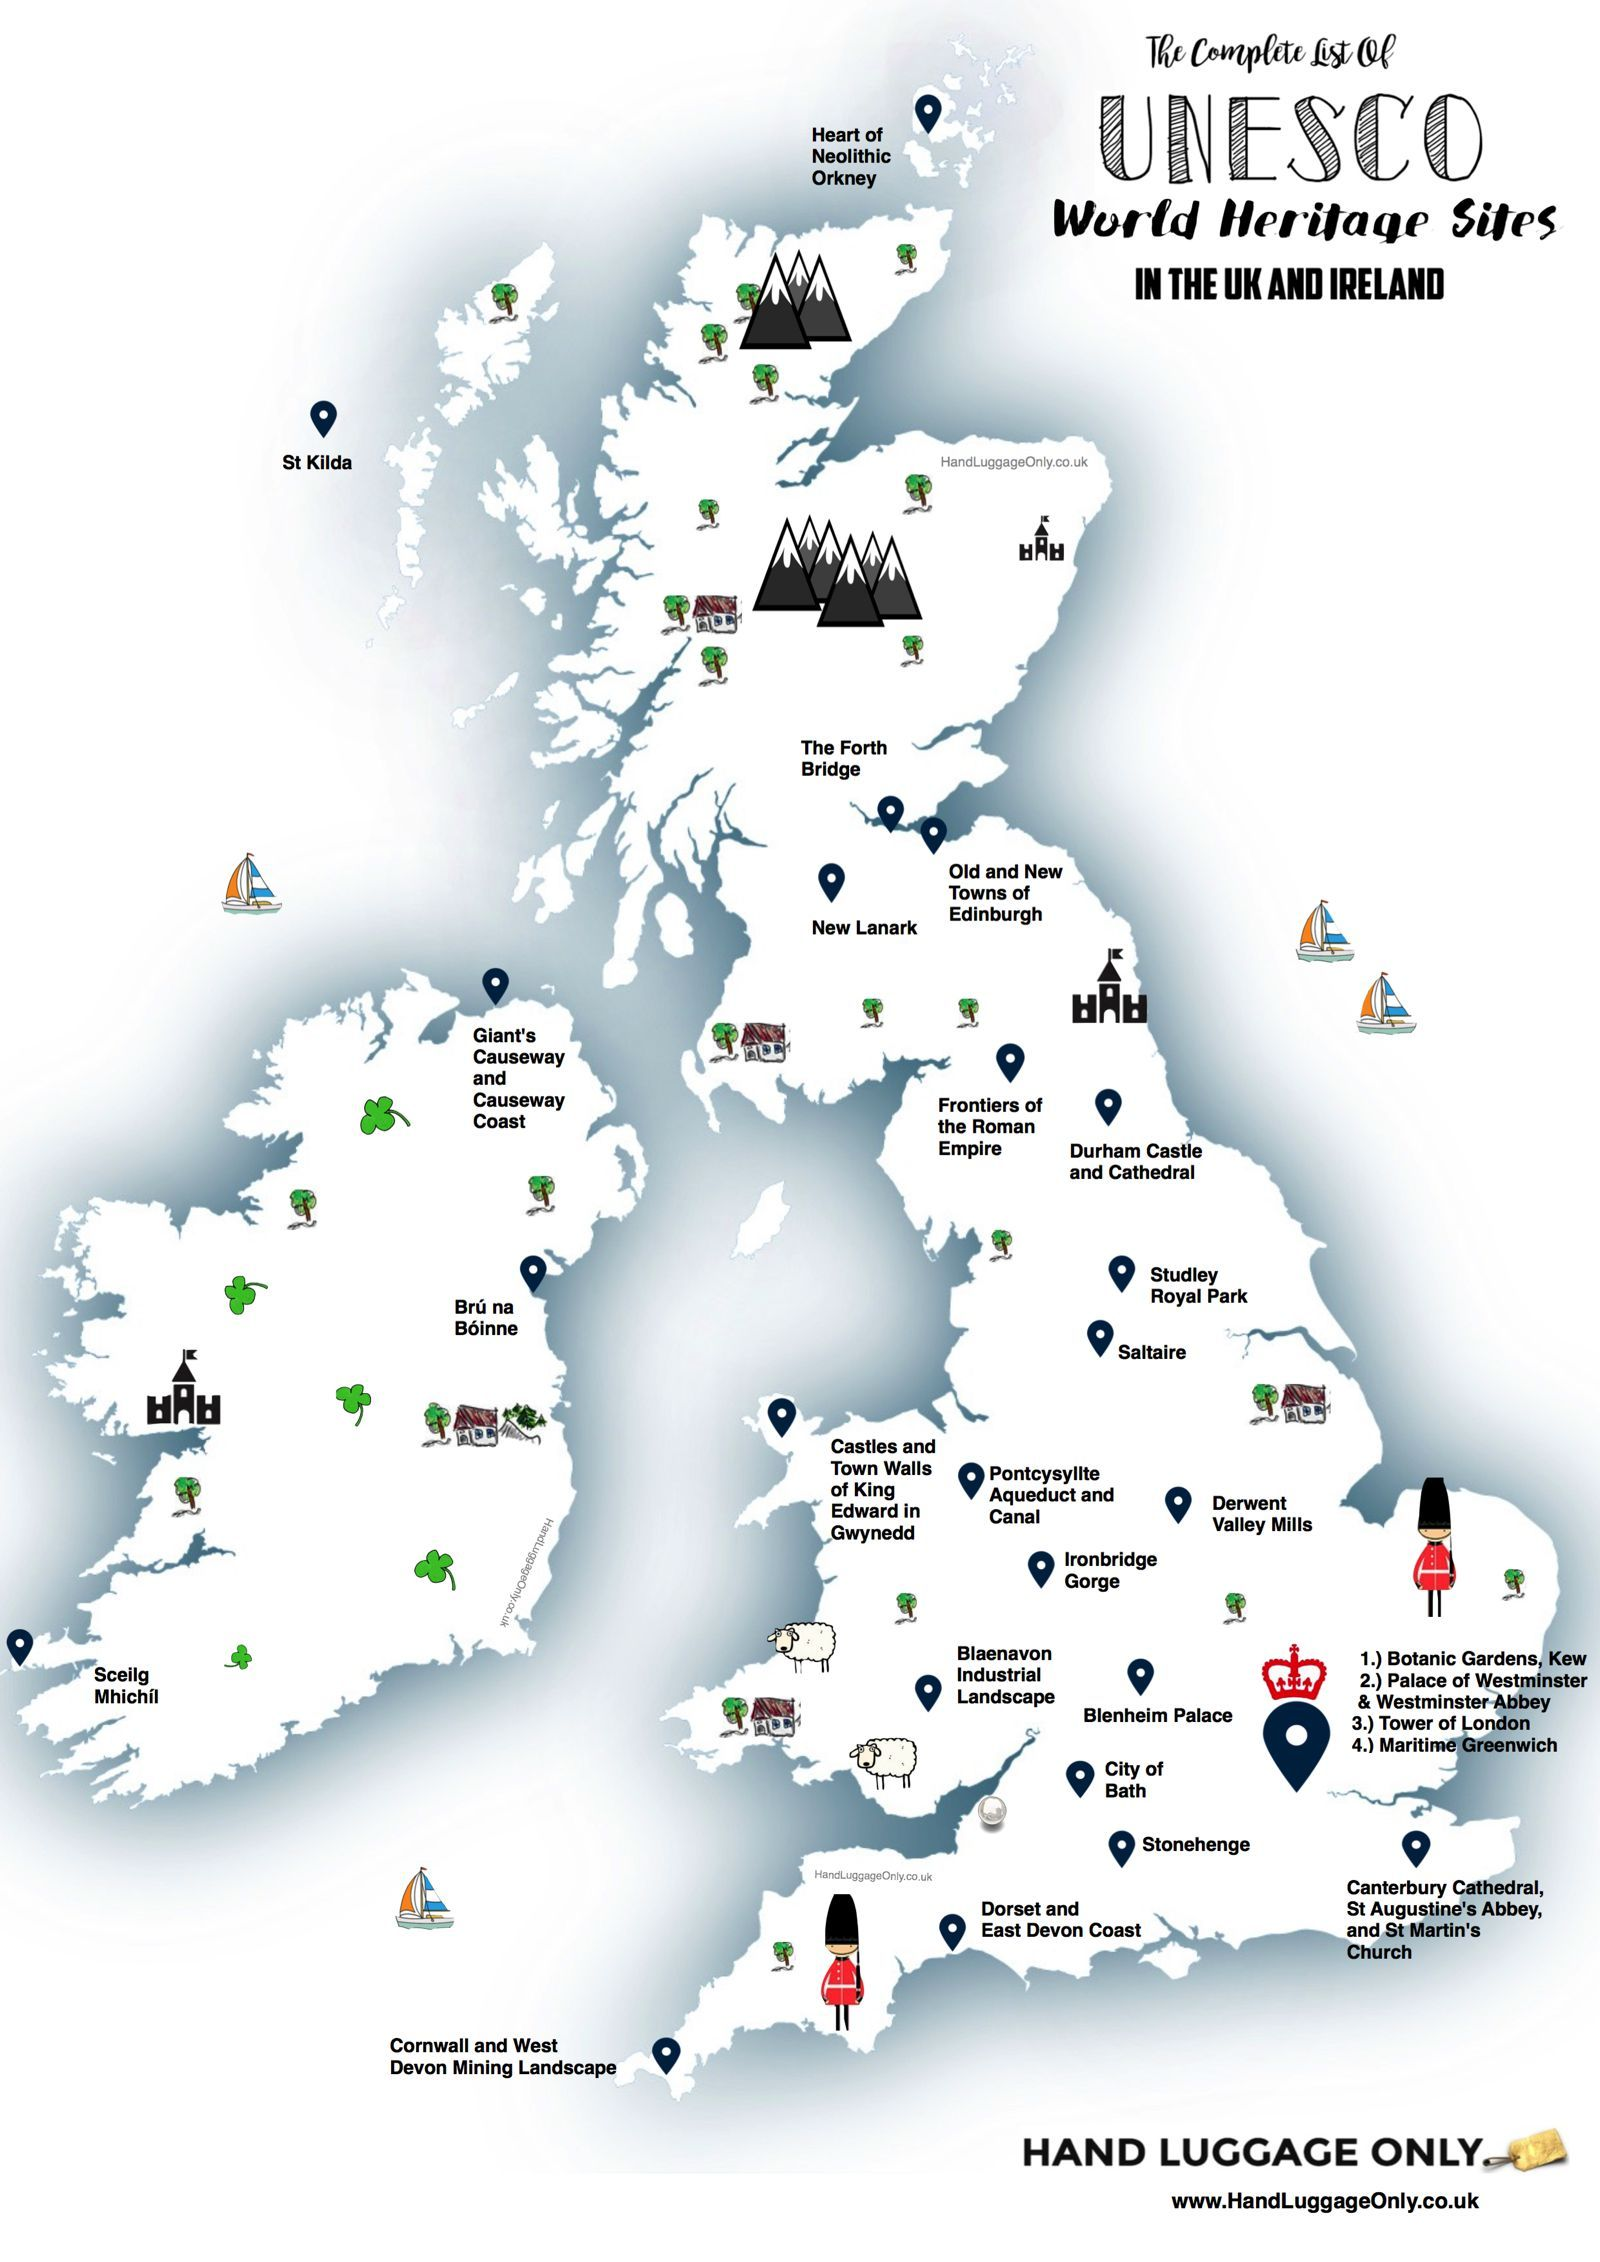 This map shows you where to find every unesco world heritage sites this map shows you where to find every unesco world heritage sites in the uk and ireland hand luggage only travel food photography blog gumiabroncs Choice Image